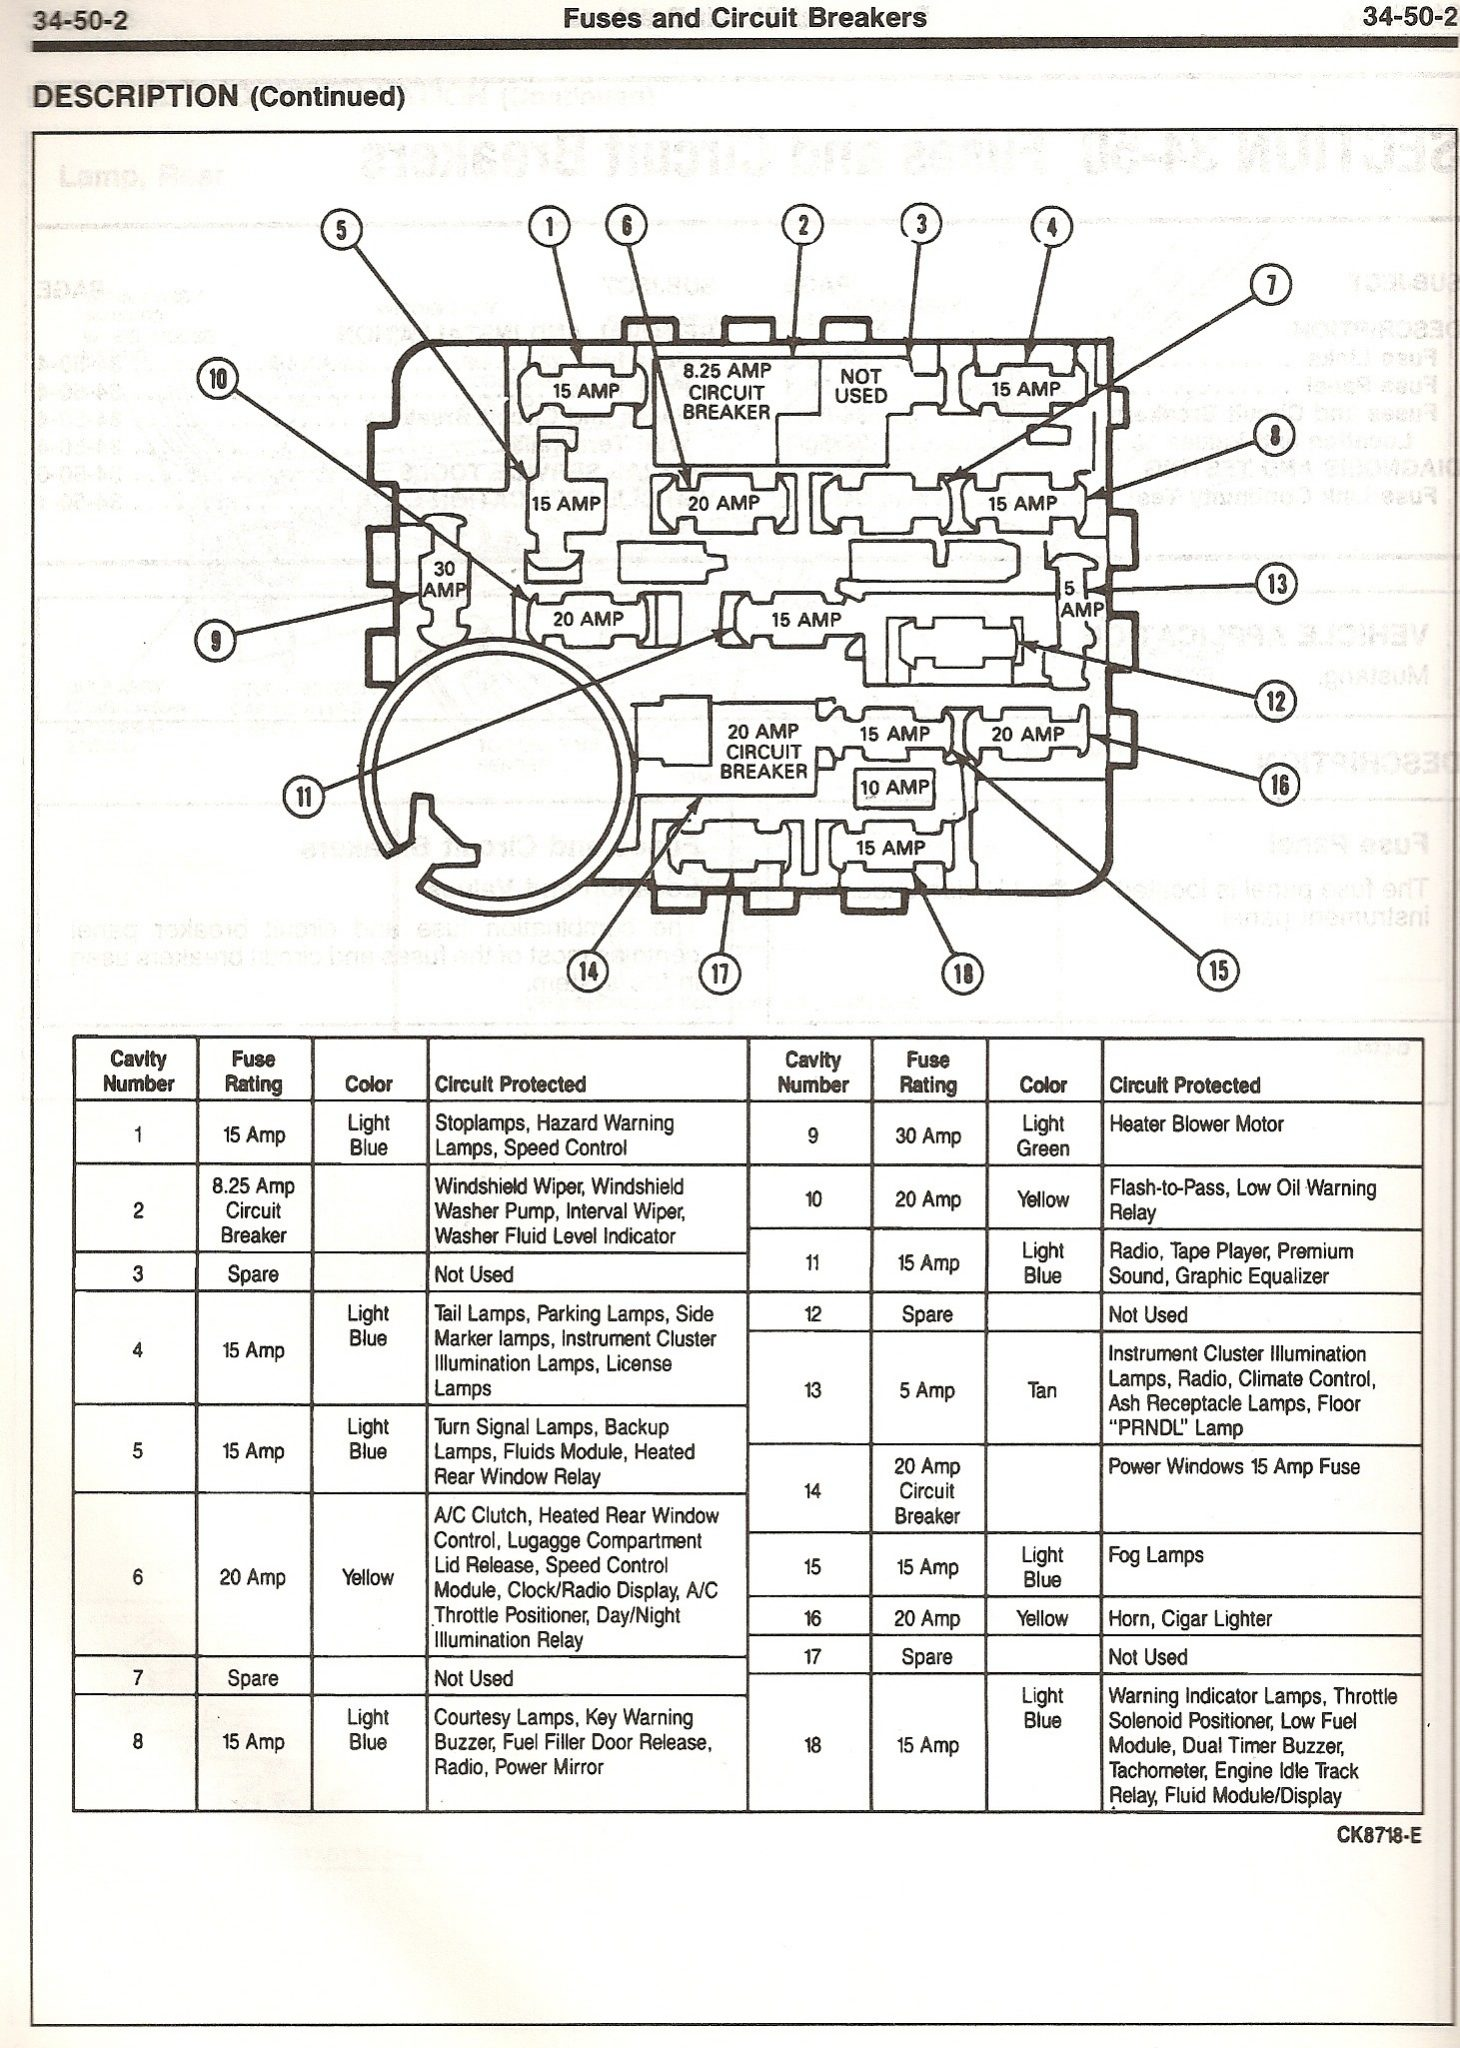 1992 f150 fuse panel diagram wiring library93 f150 fuse box diagram wire data schema u2022 rh kiymik co 1992 f150 underhood fuse